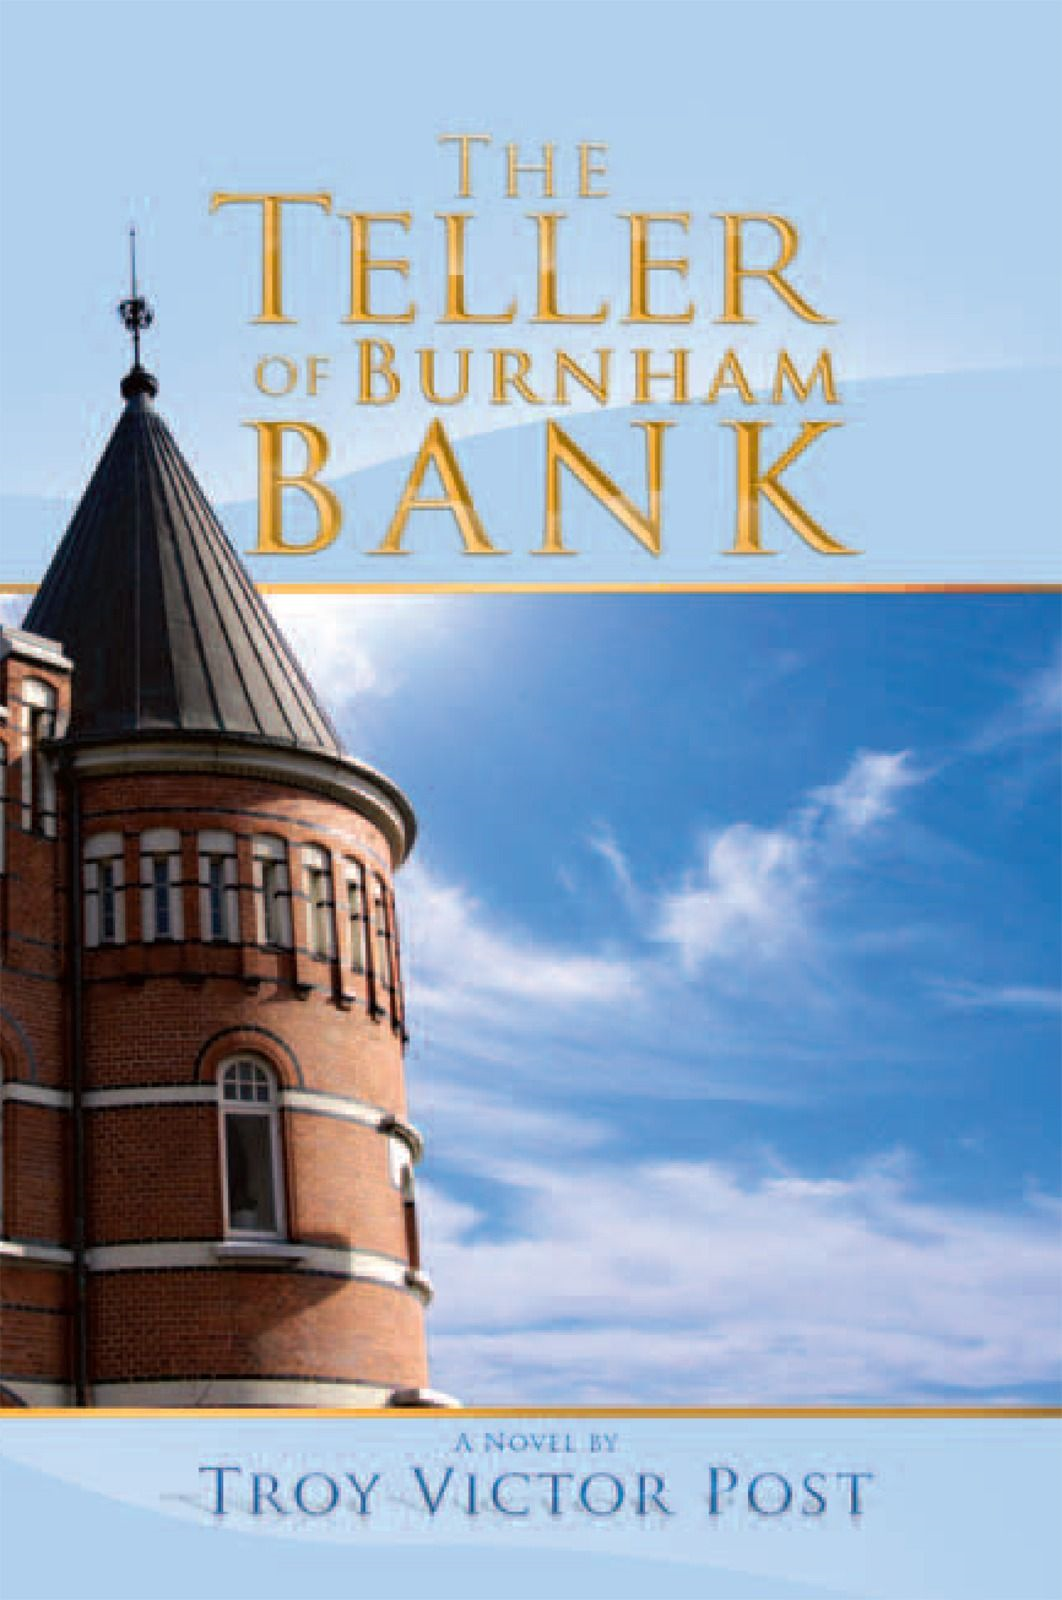 The Teller of Burnham Bank